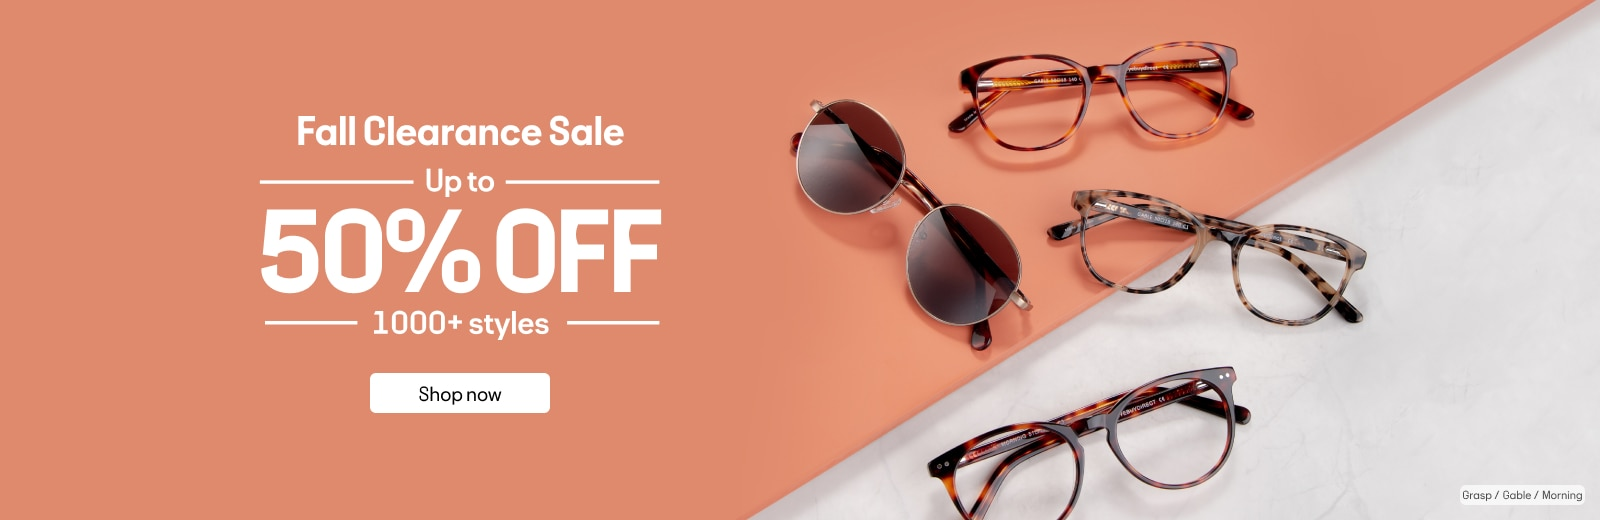 Fall Clearance Sale Up to 50% OFF 1000+ Styles